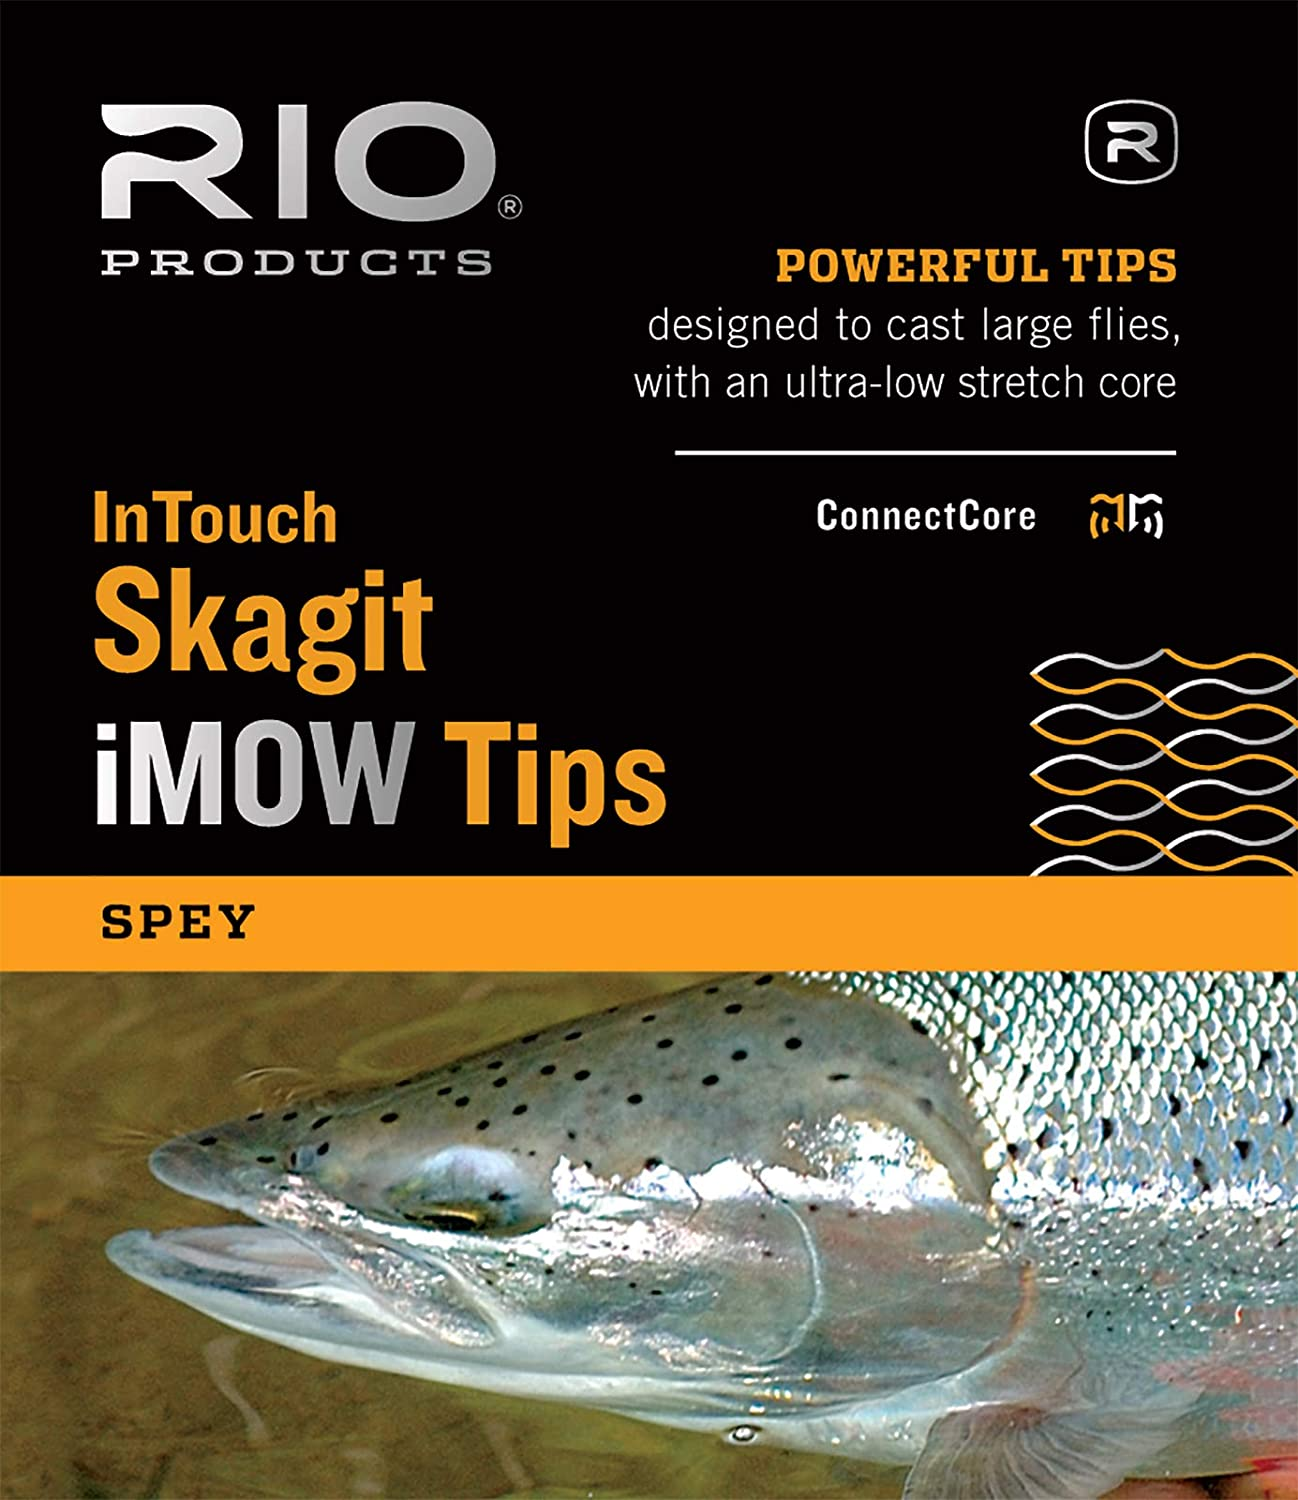 RIO Products InTouch Skagit iMOW Max 49% OFF Medium Now free shipping Tip